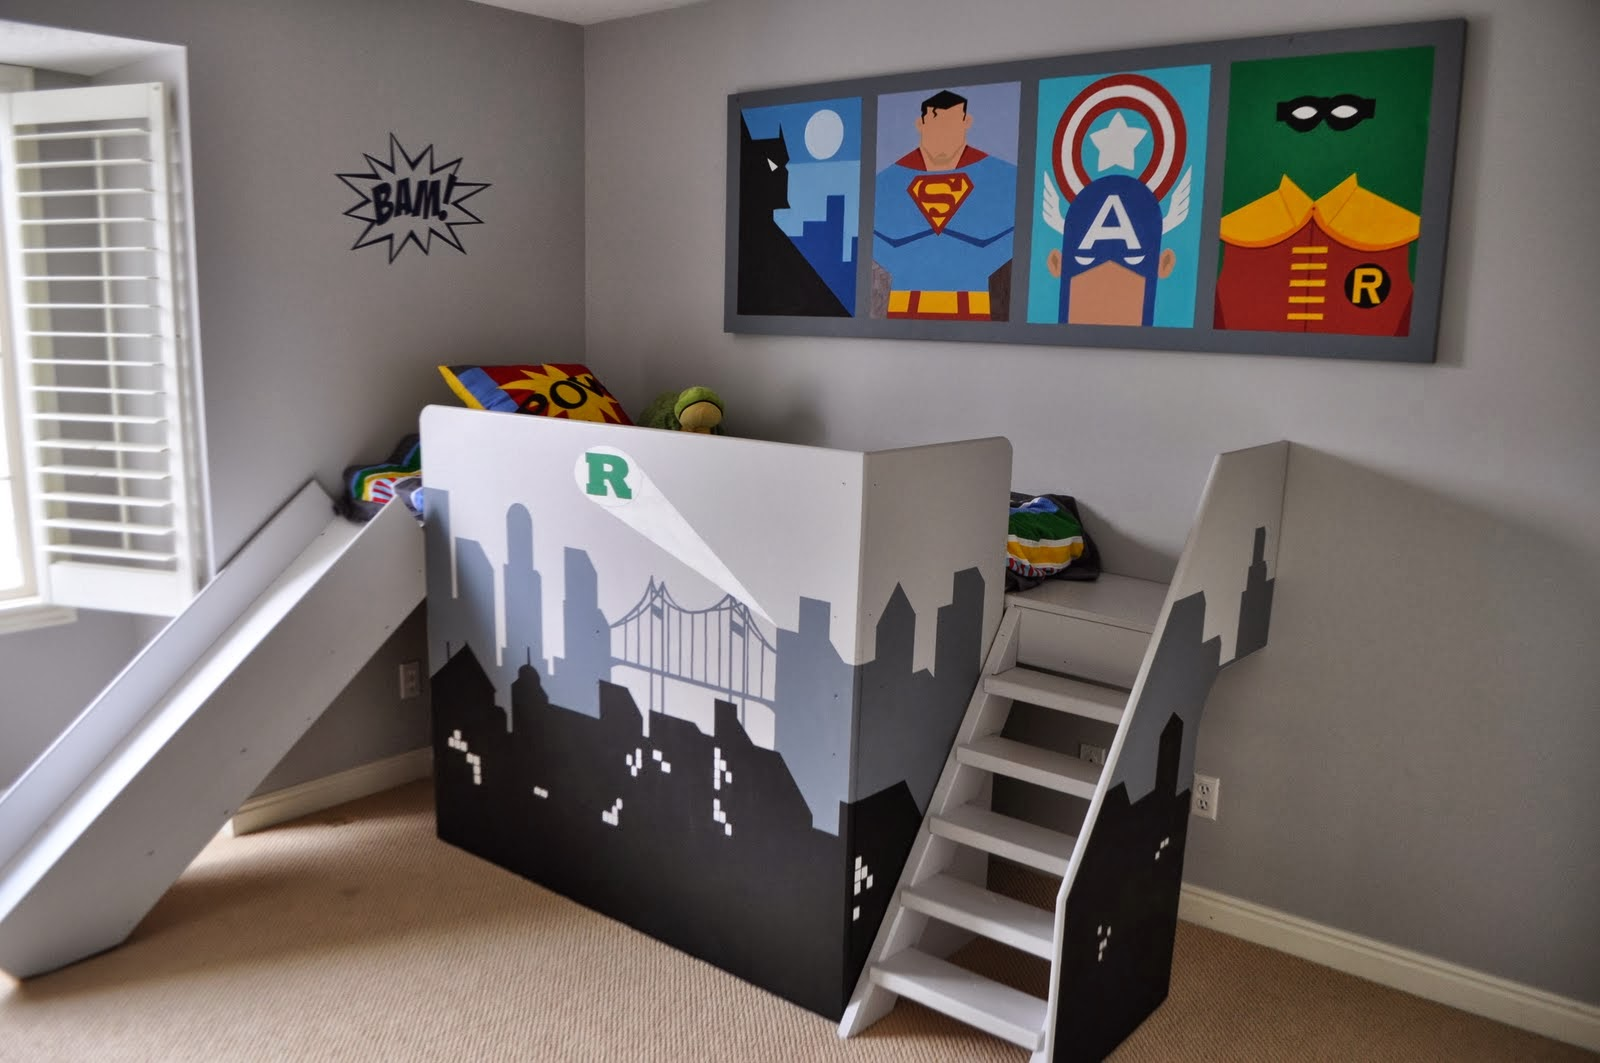 D couvrez 15 des plus belles chambres d 39 enfants du monde for Room decor for 5 year old boy